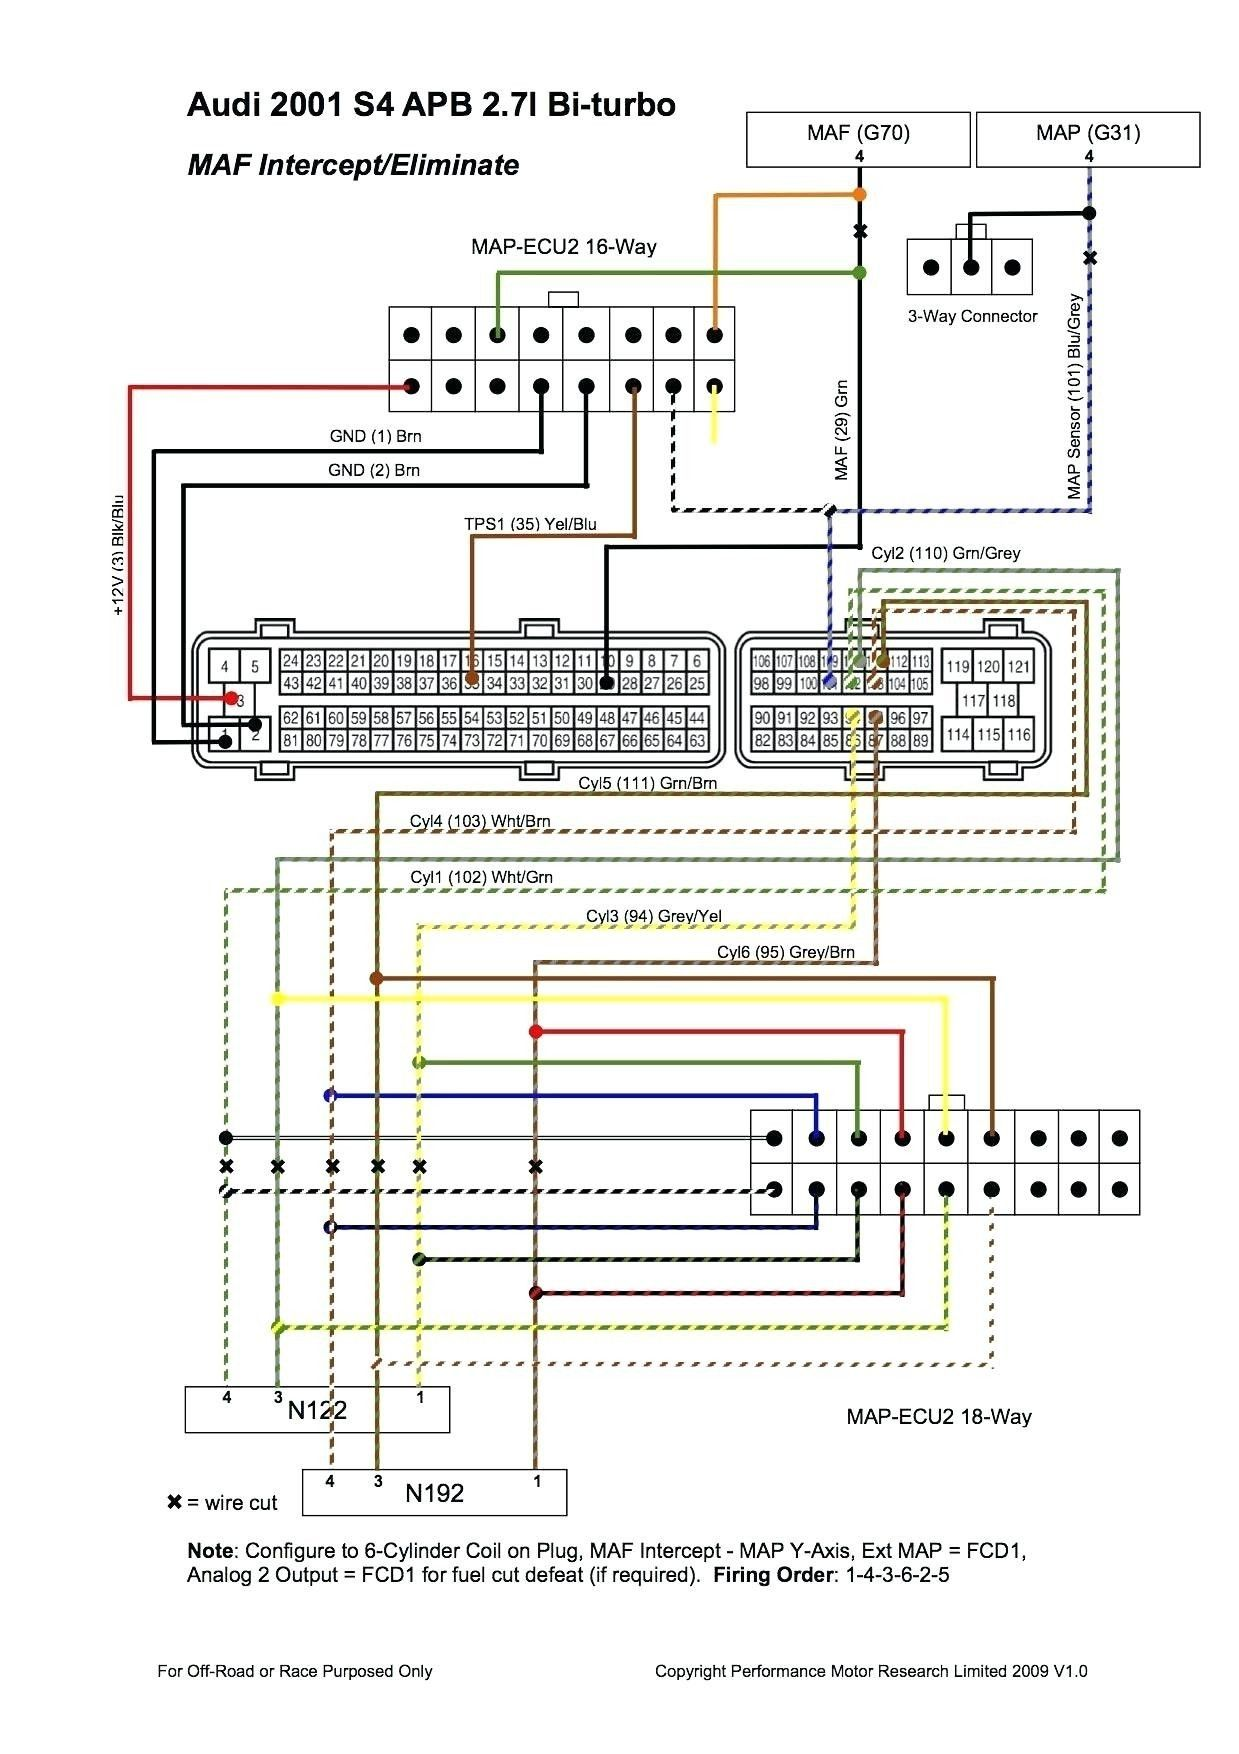 Beautiful Wiring Diagram Kancil 660 Diagrams Digramssample Diagramimages Wiringdiagramsample Wiri Trailer Wiring Diagram Electrical Wiring Diagram Diagram